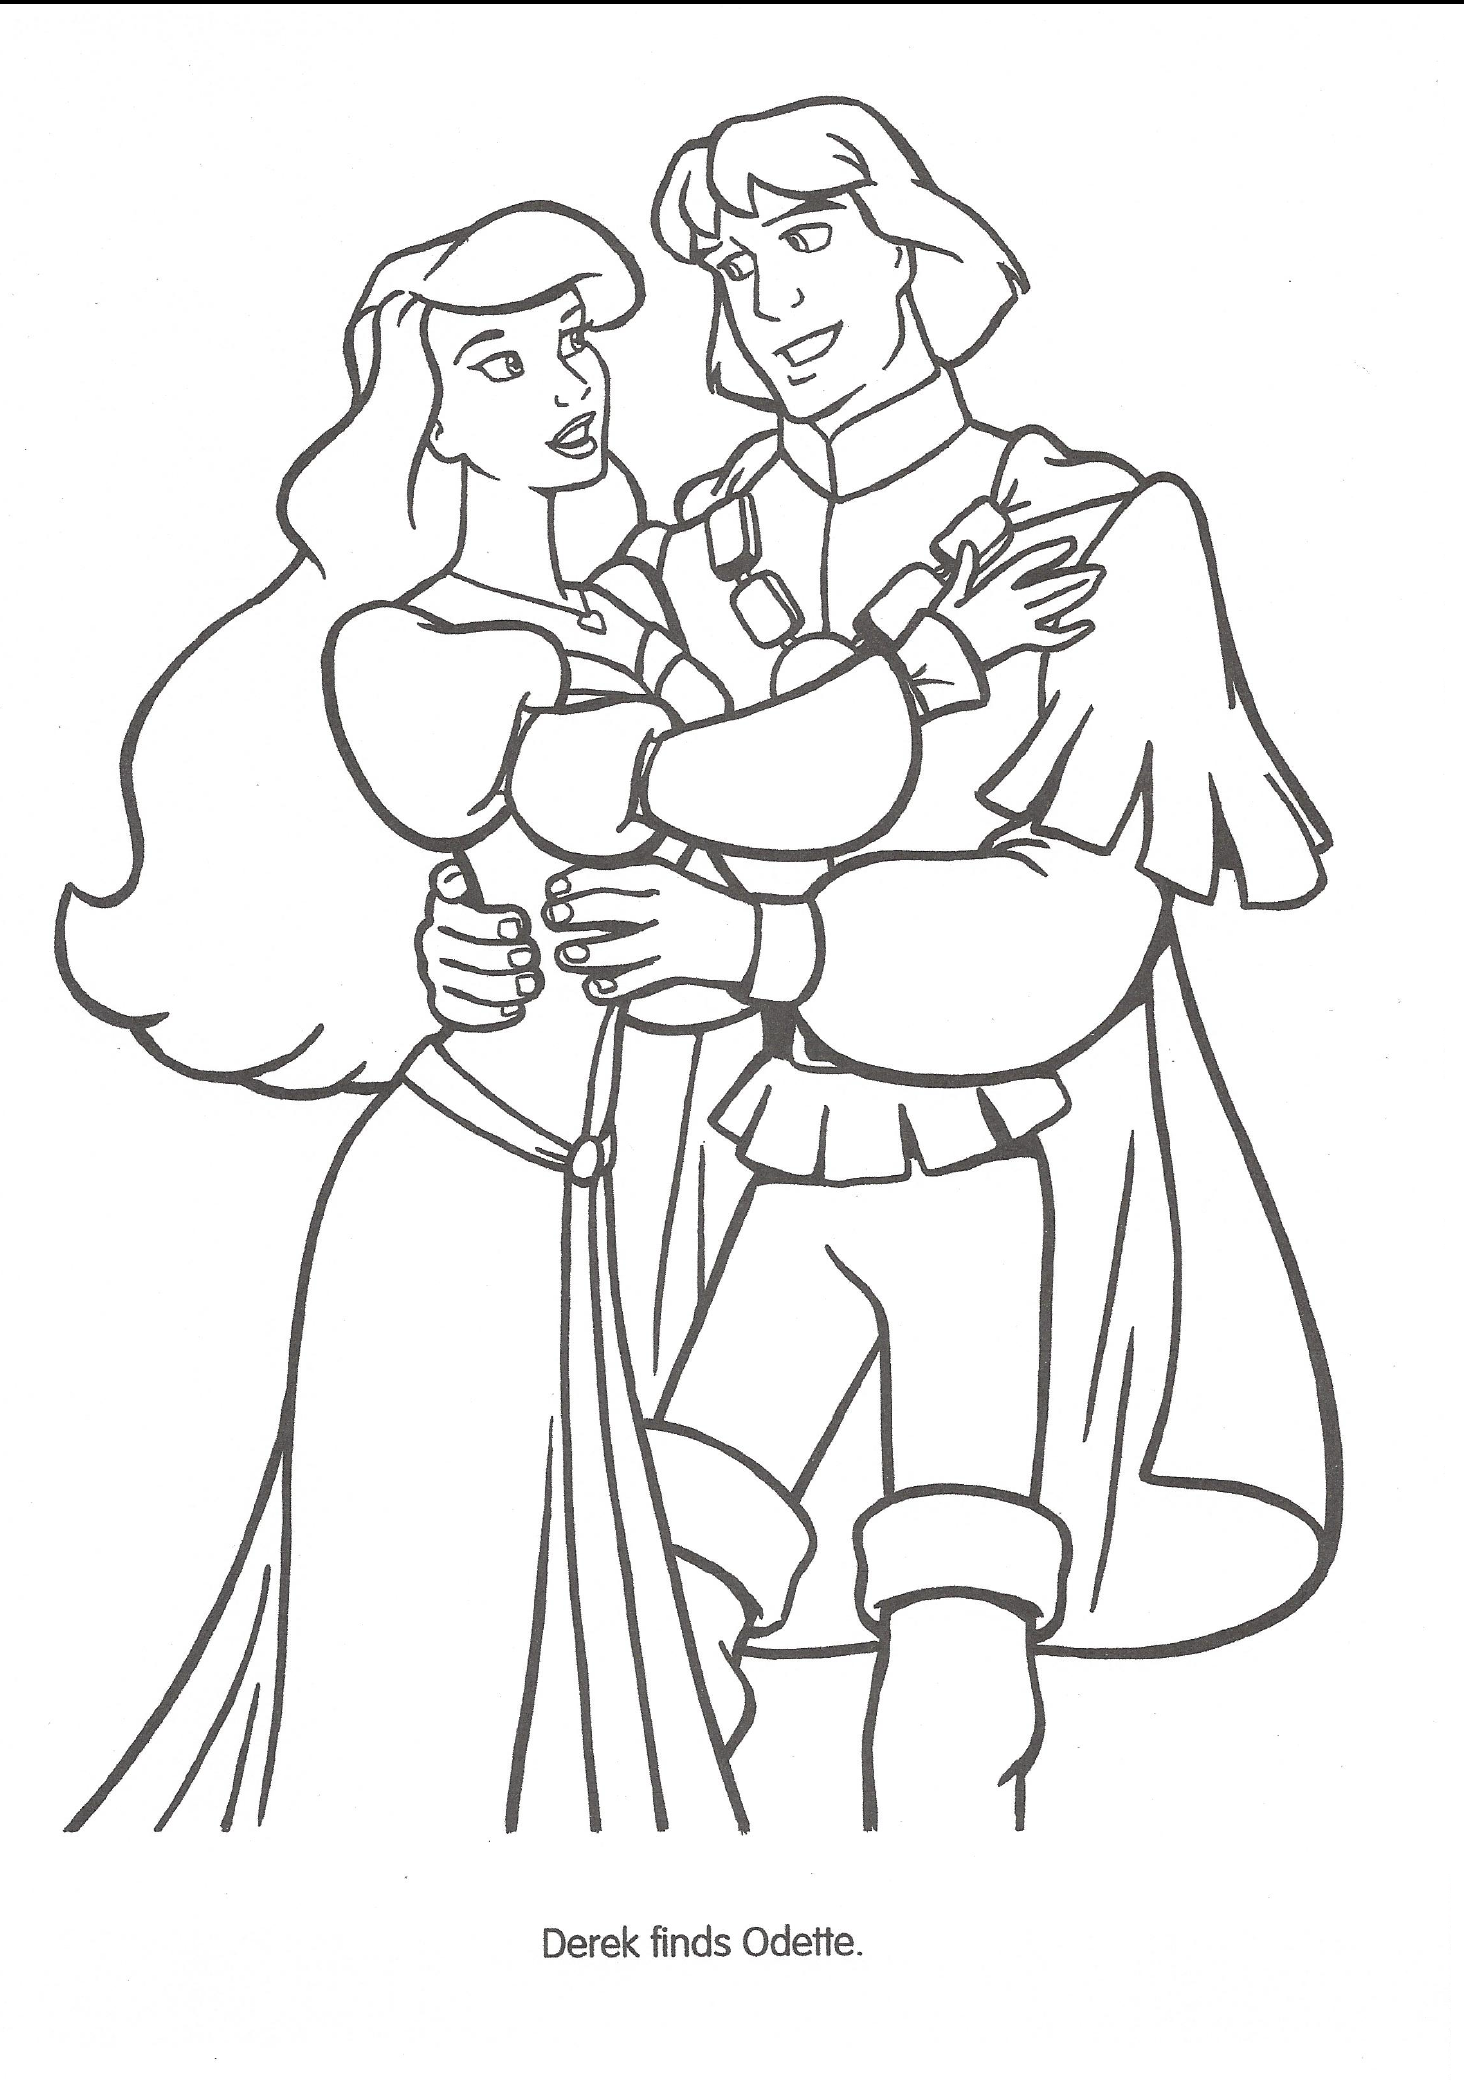 Swan princess coloring pages free - Awesome Swan Princess Coloring Pages With Who I Am You S